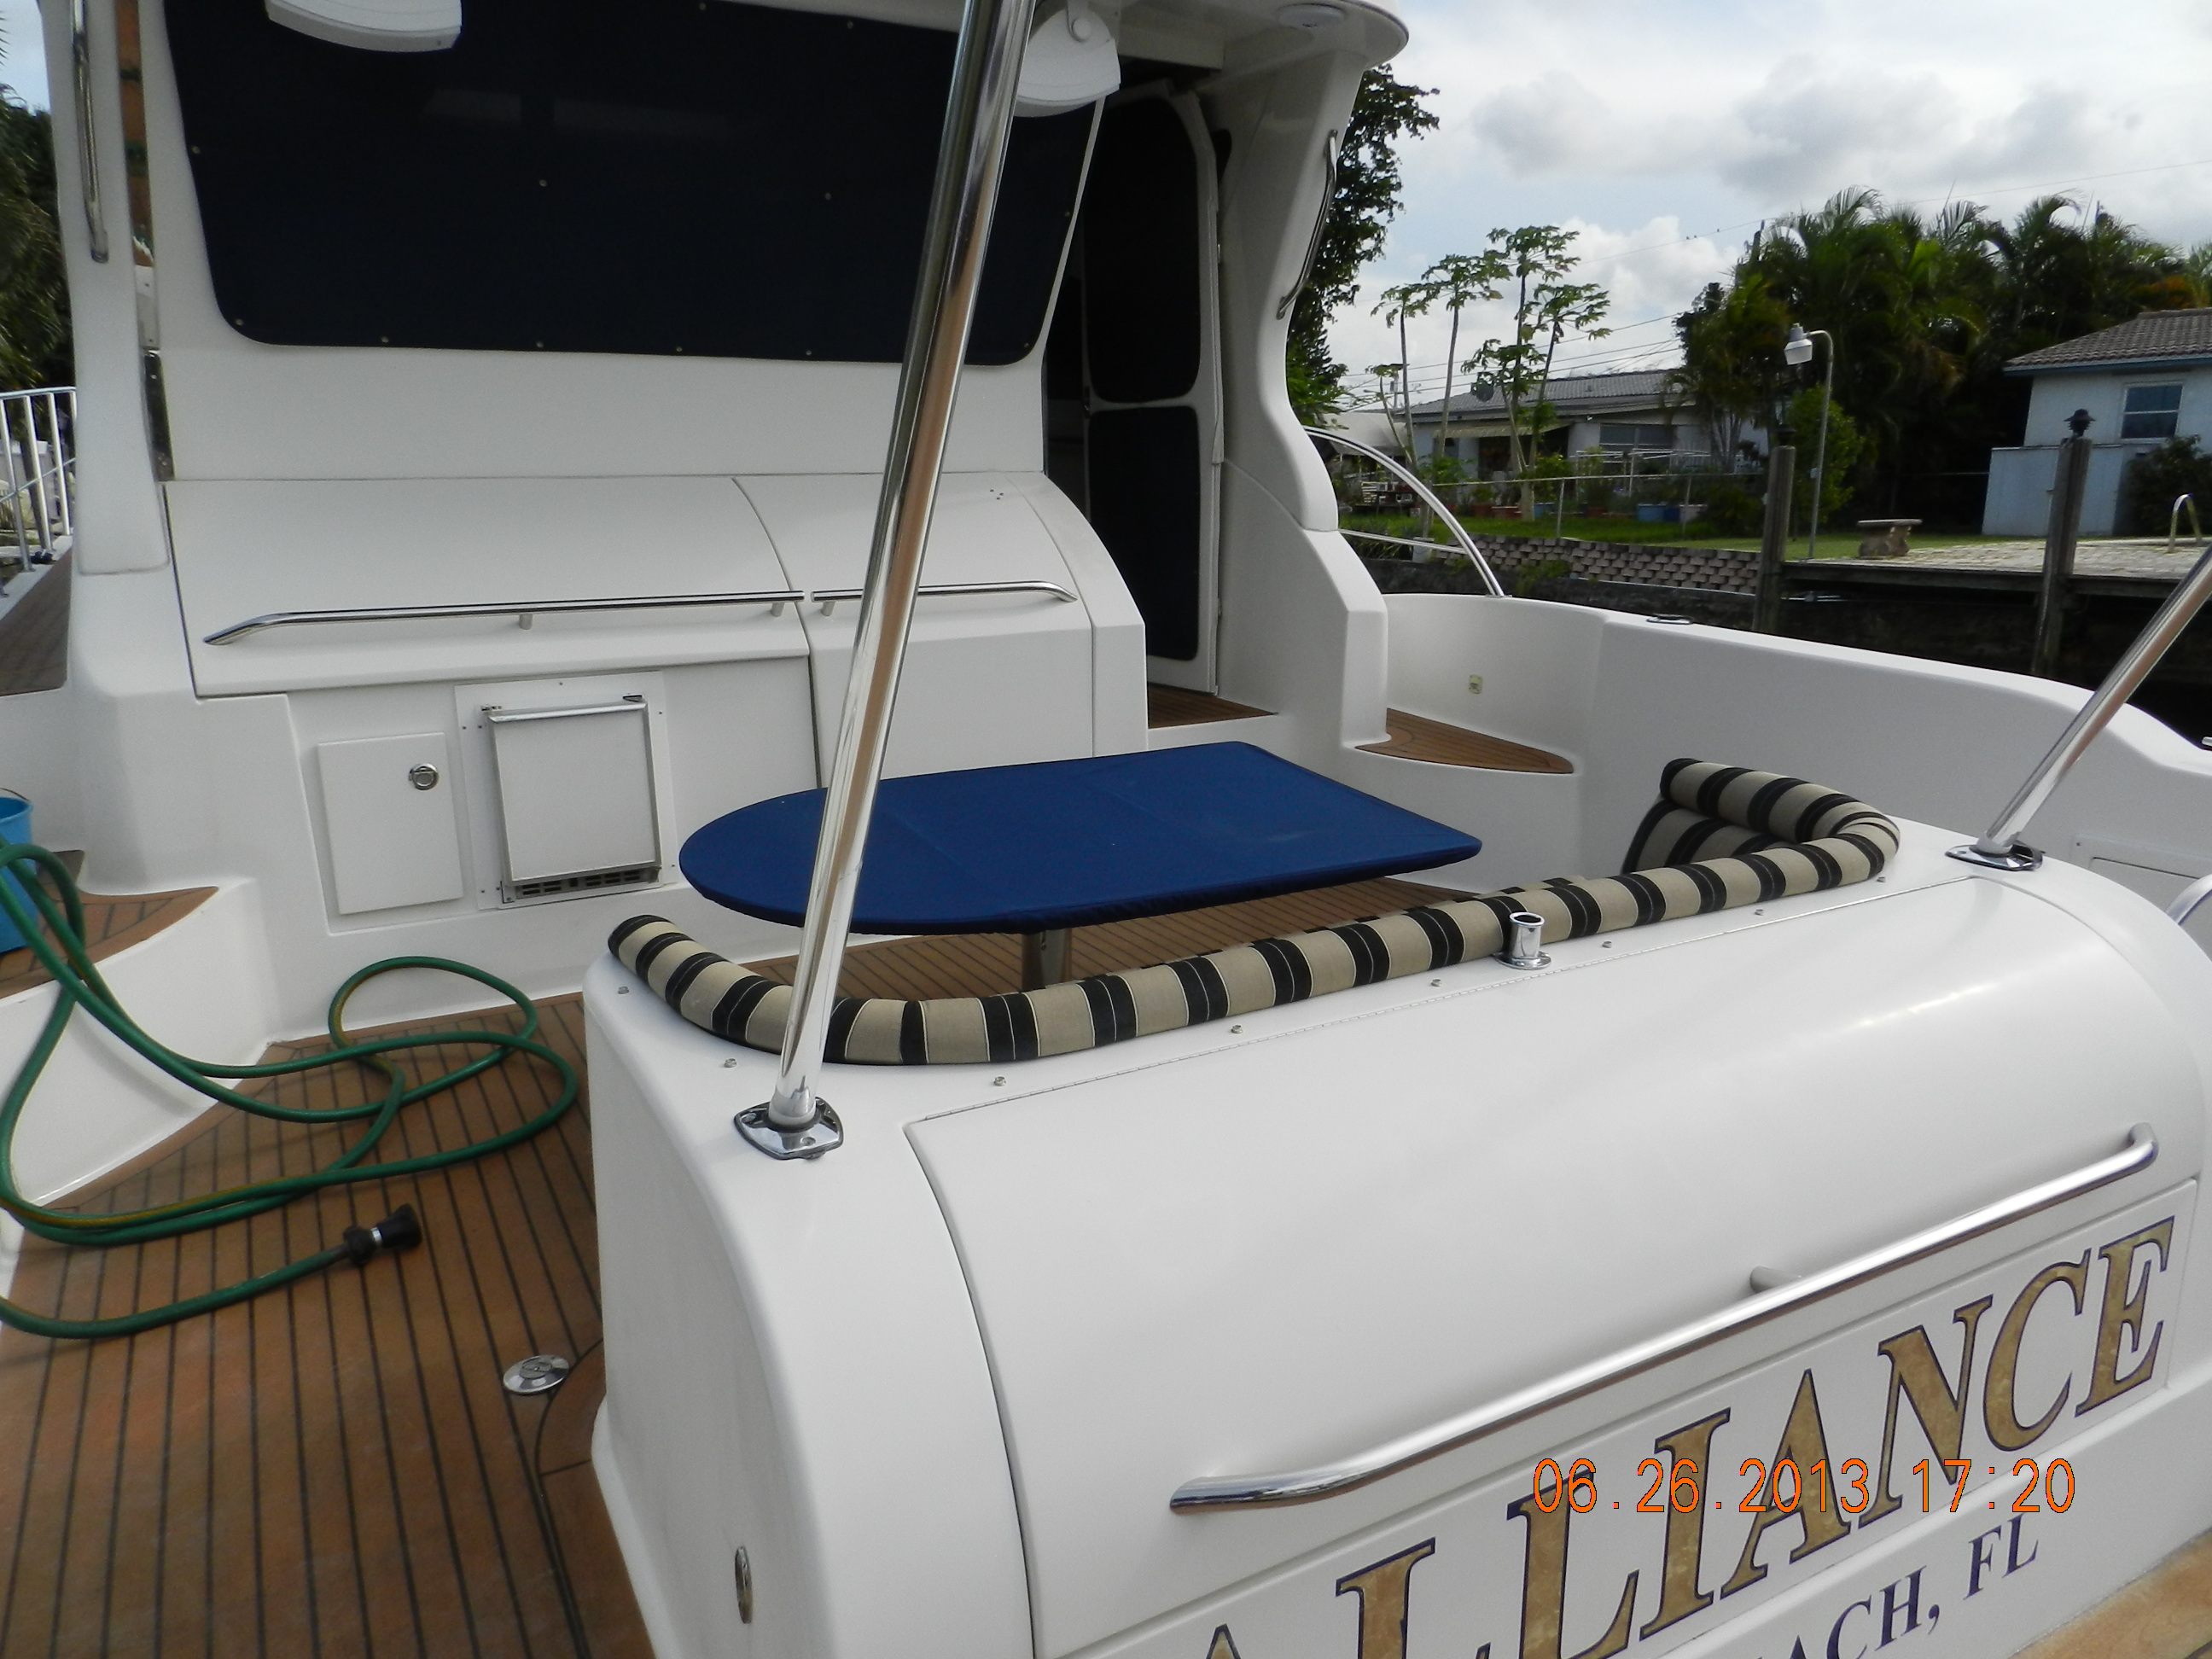 Alliance_yacht_June_2013 010